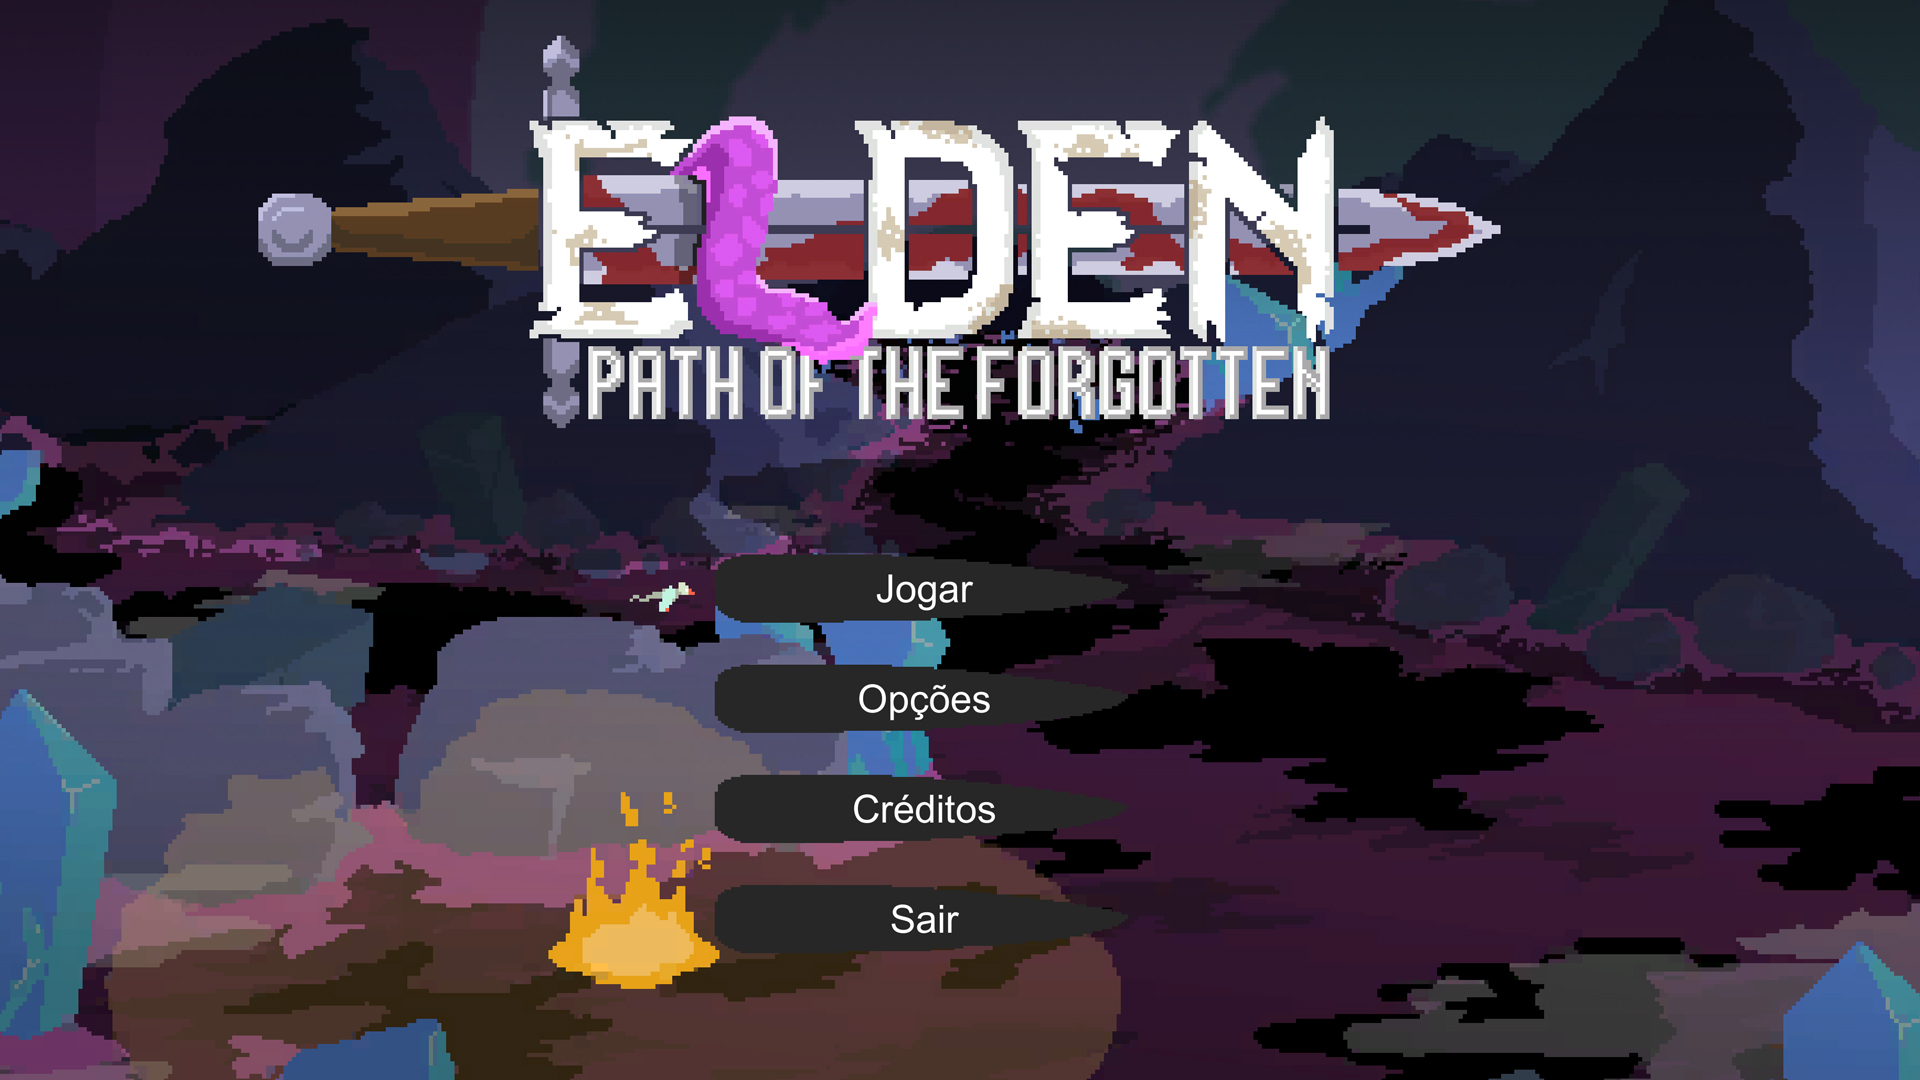 Elden: Path of the Forgotten totalmente em portuguÊs